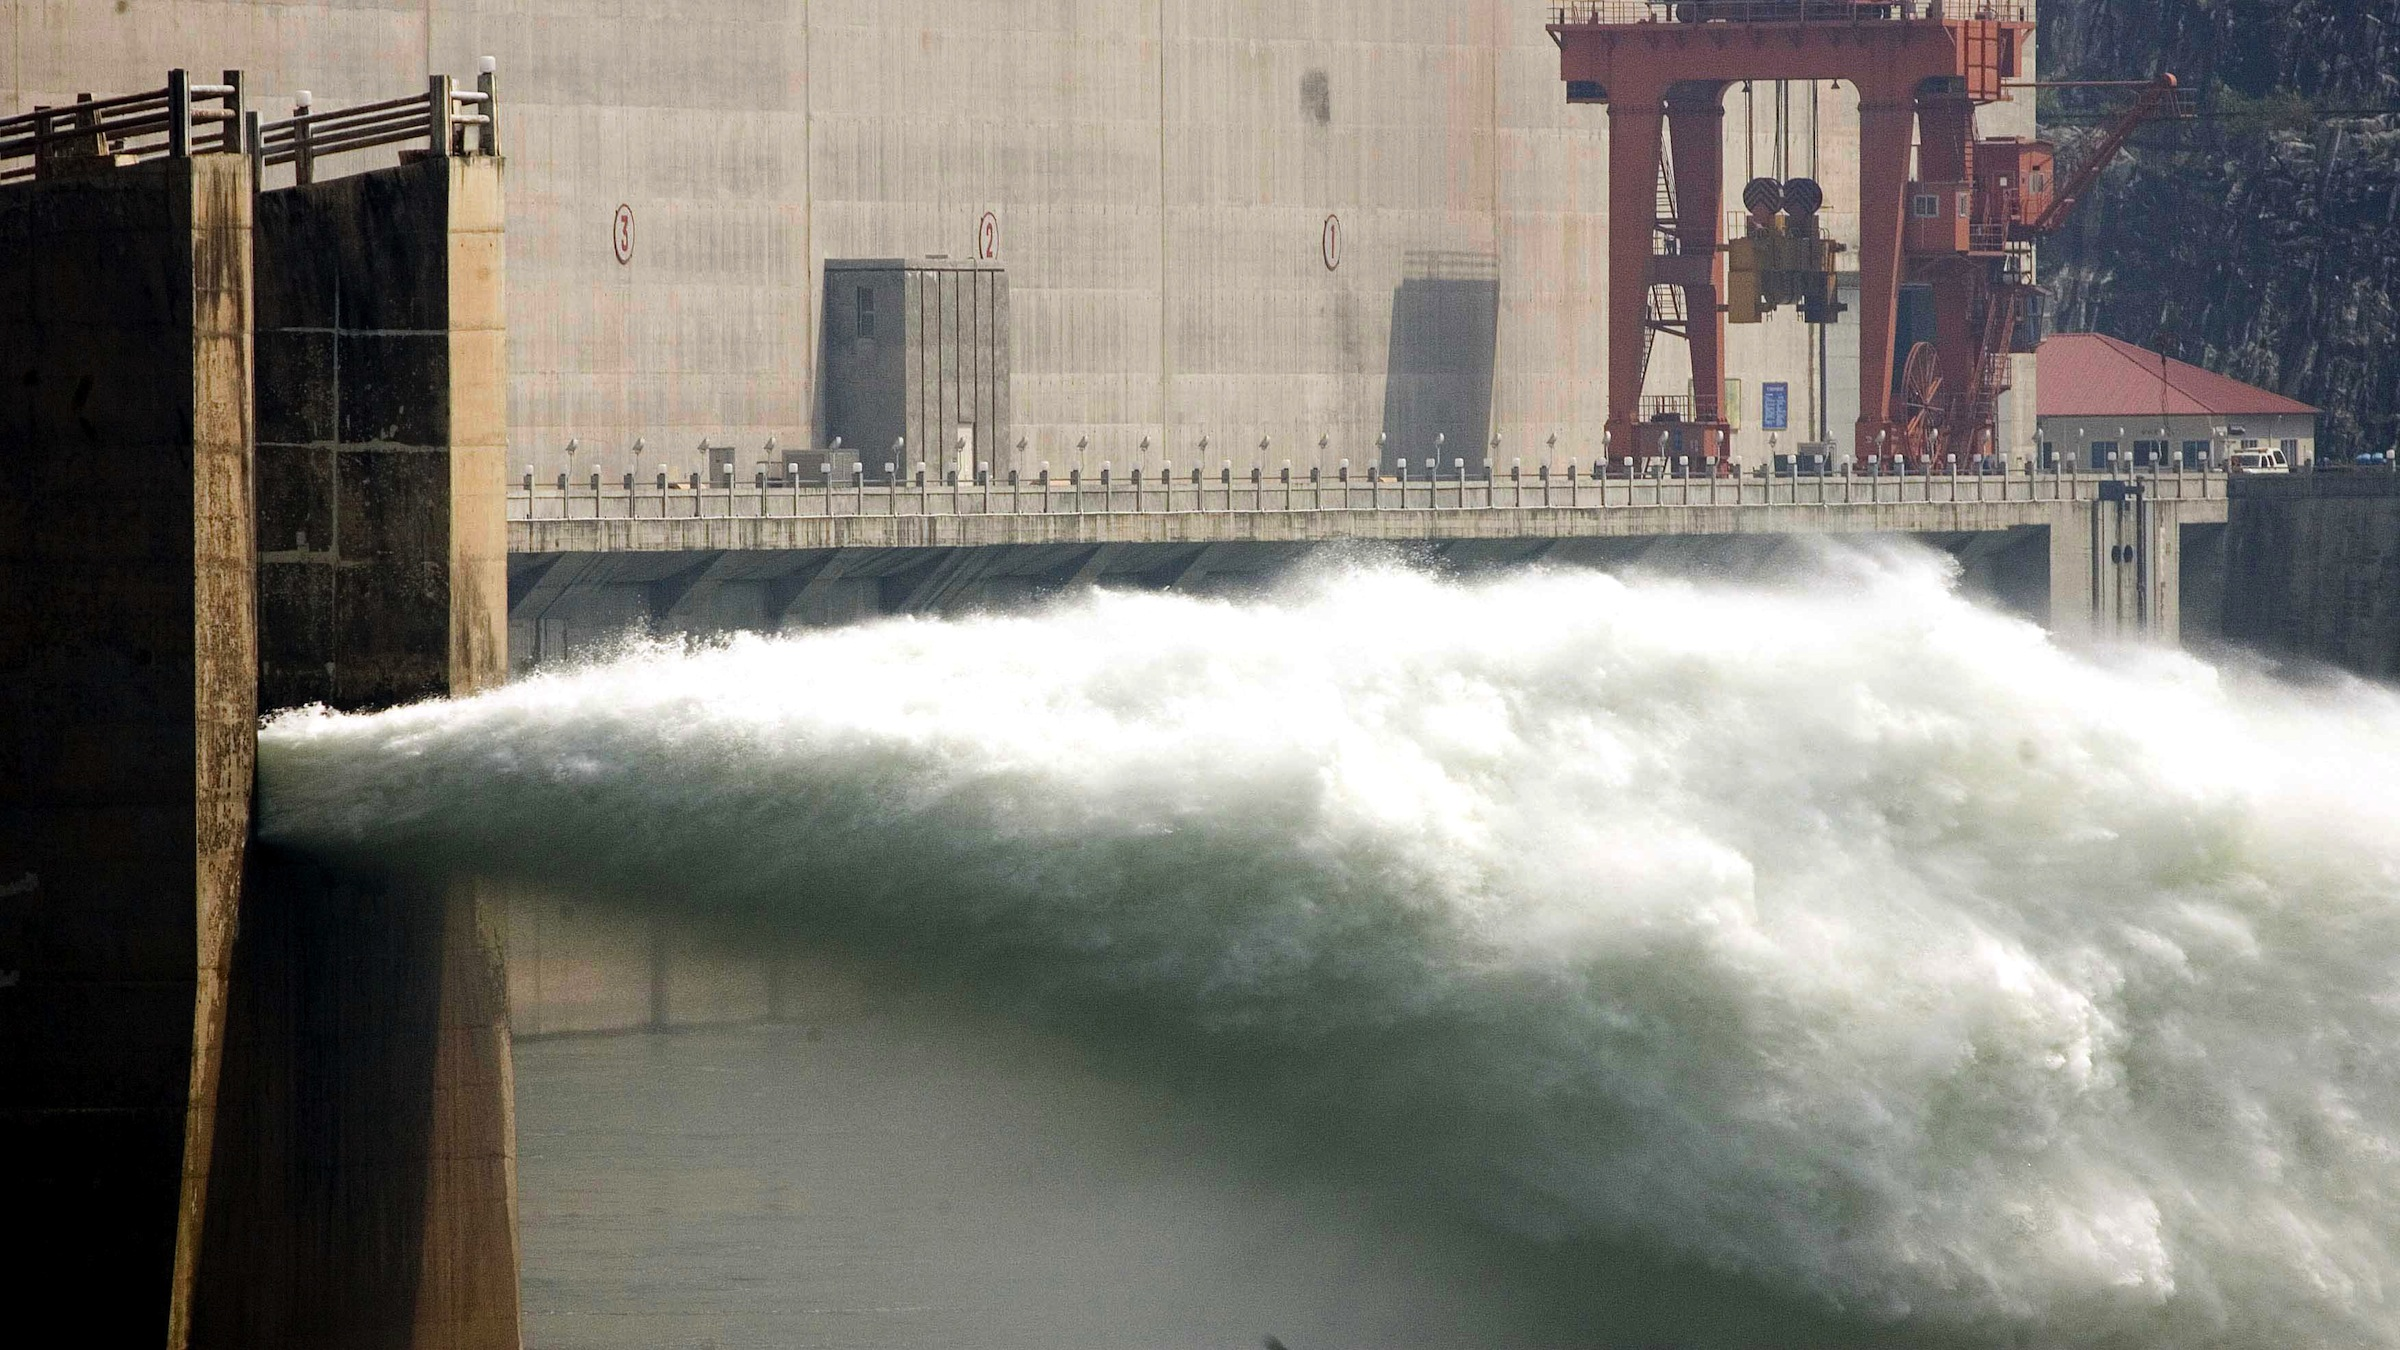 Water being released from the Three Gorges Dam in China